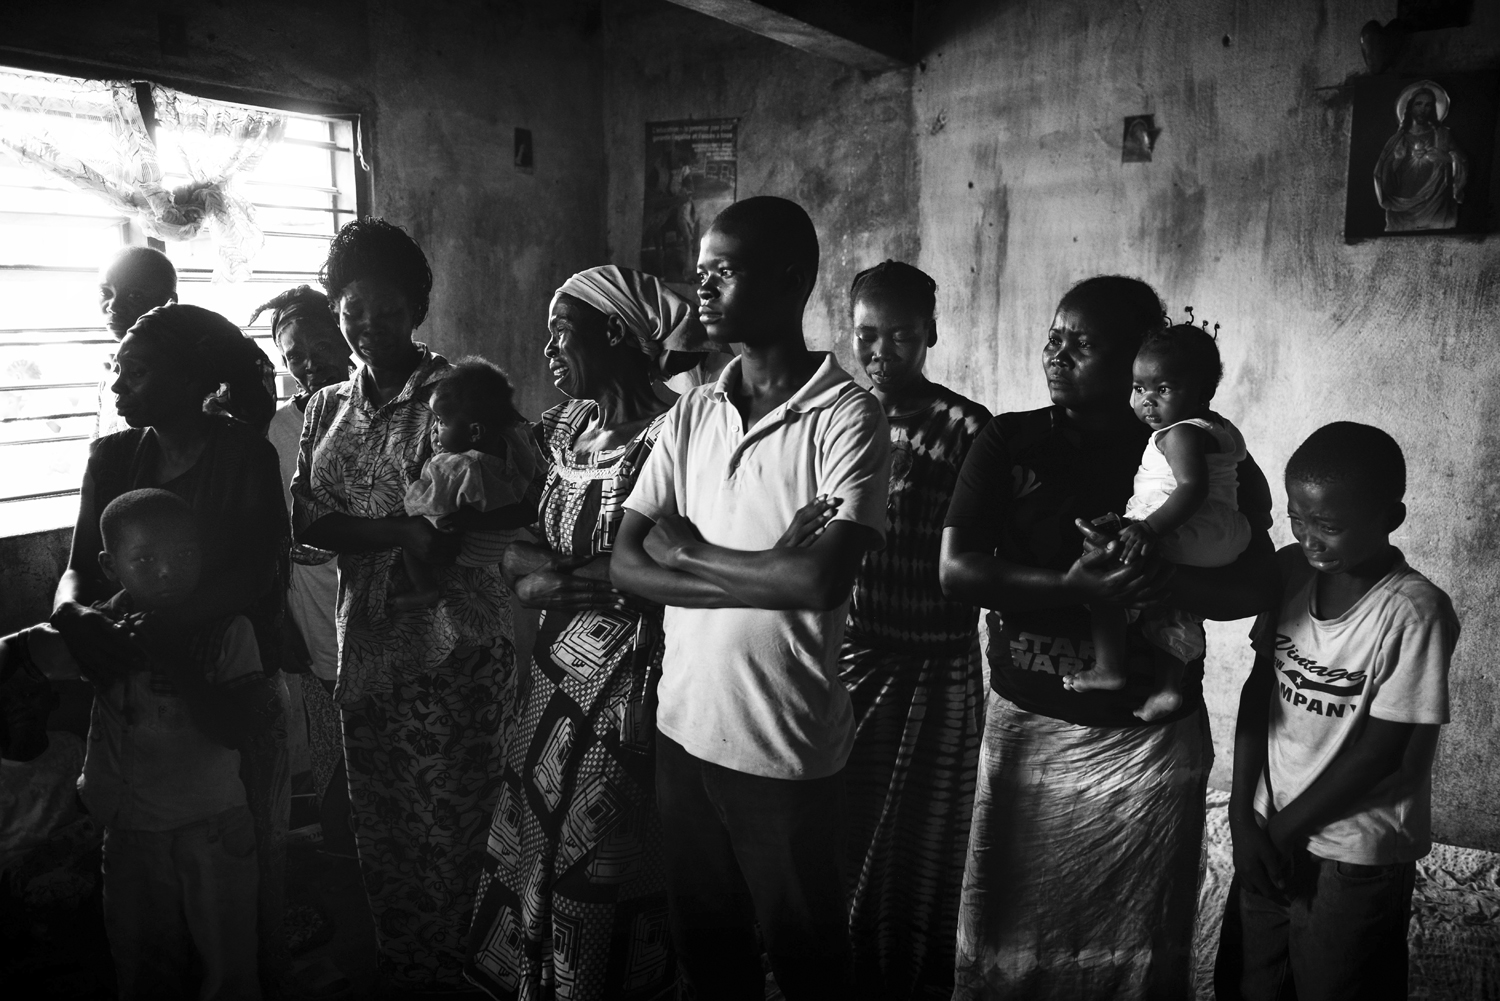 Members of a minister's family cry after he and a son were killed by militiamen, one day after the politician spoke out on the radio against the violence. Feb. 9, 2014.